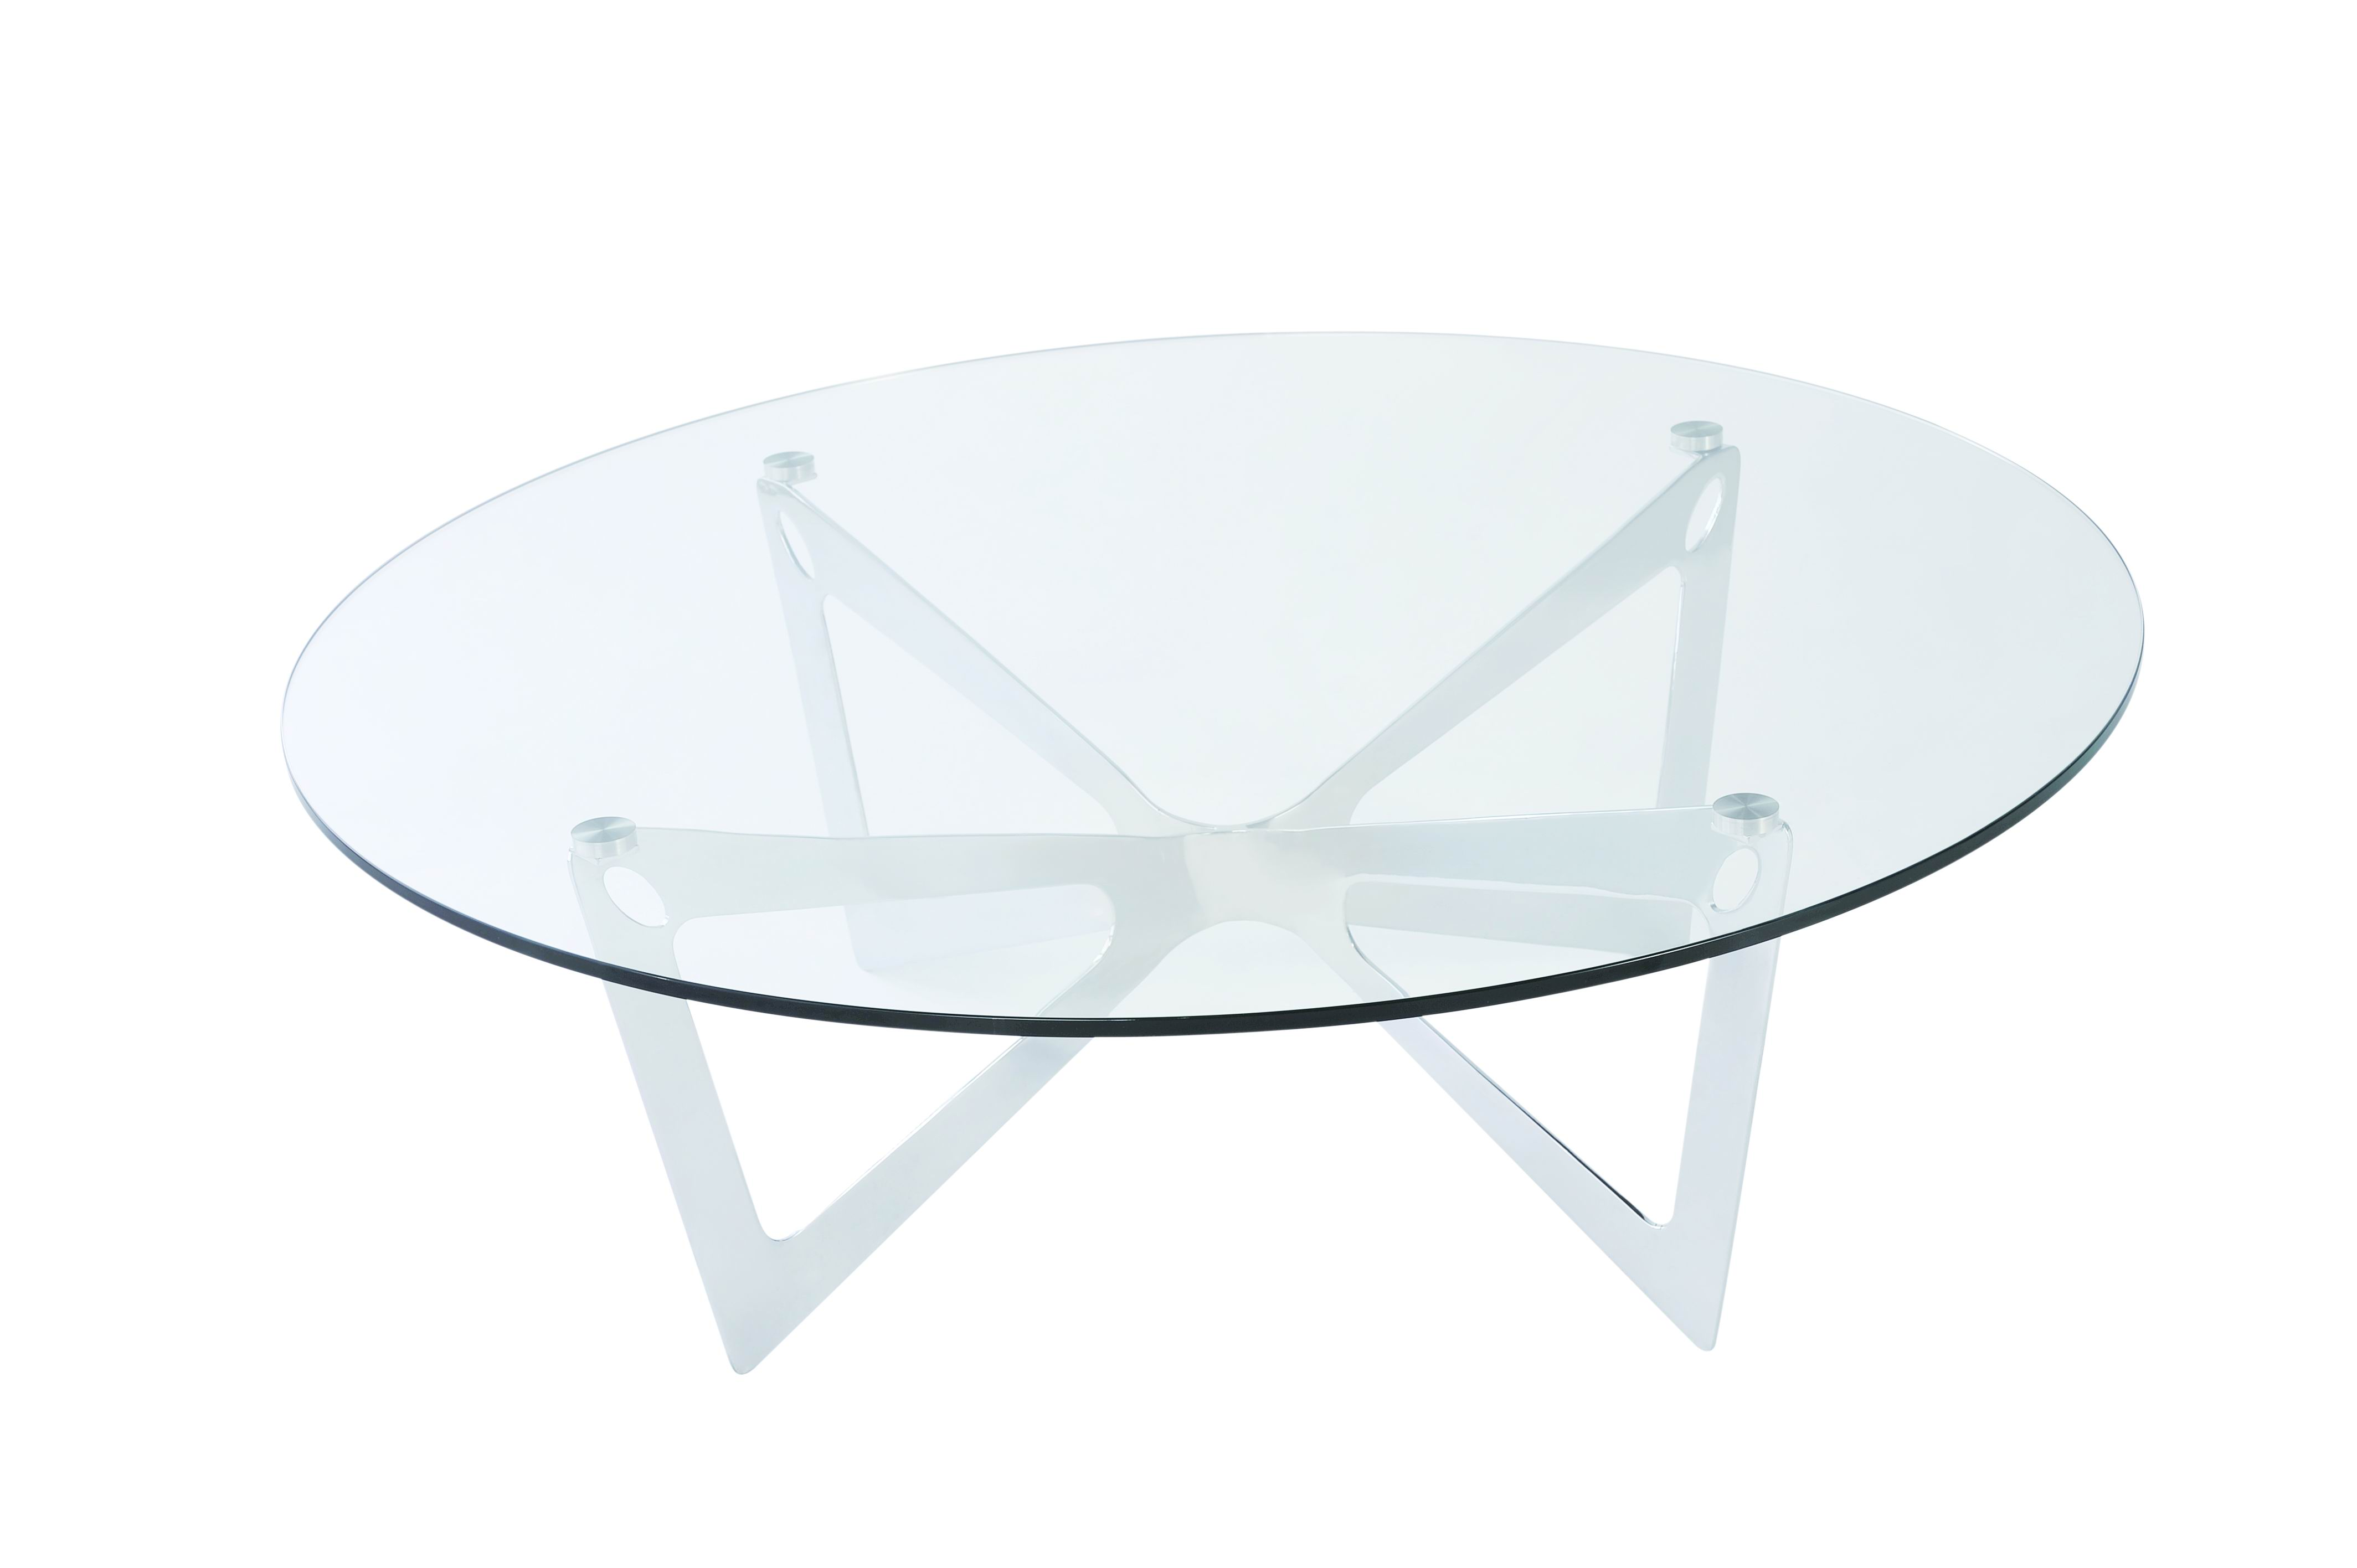 Contemporary Round Glass Top Coffee Table Rustic Adjustable Coffee Table Round Glass Great Coffee Table With Glass (Image 3 of 10)